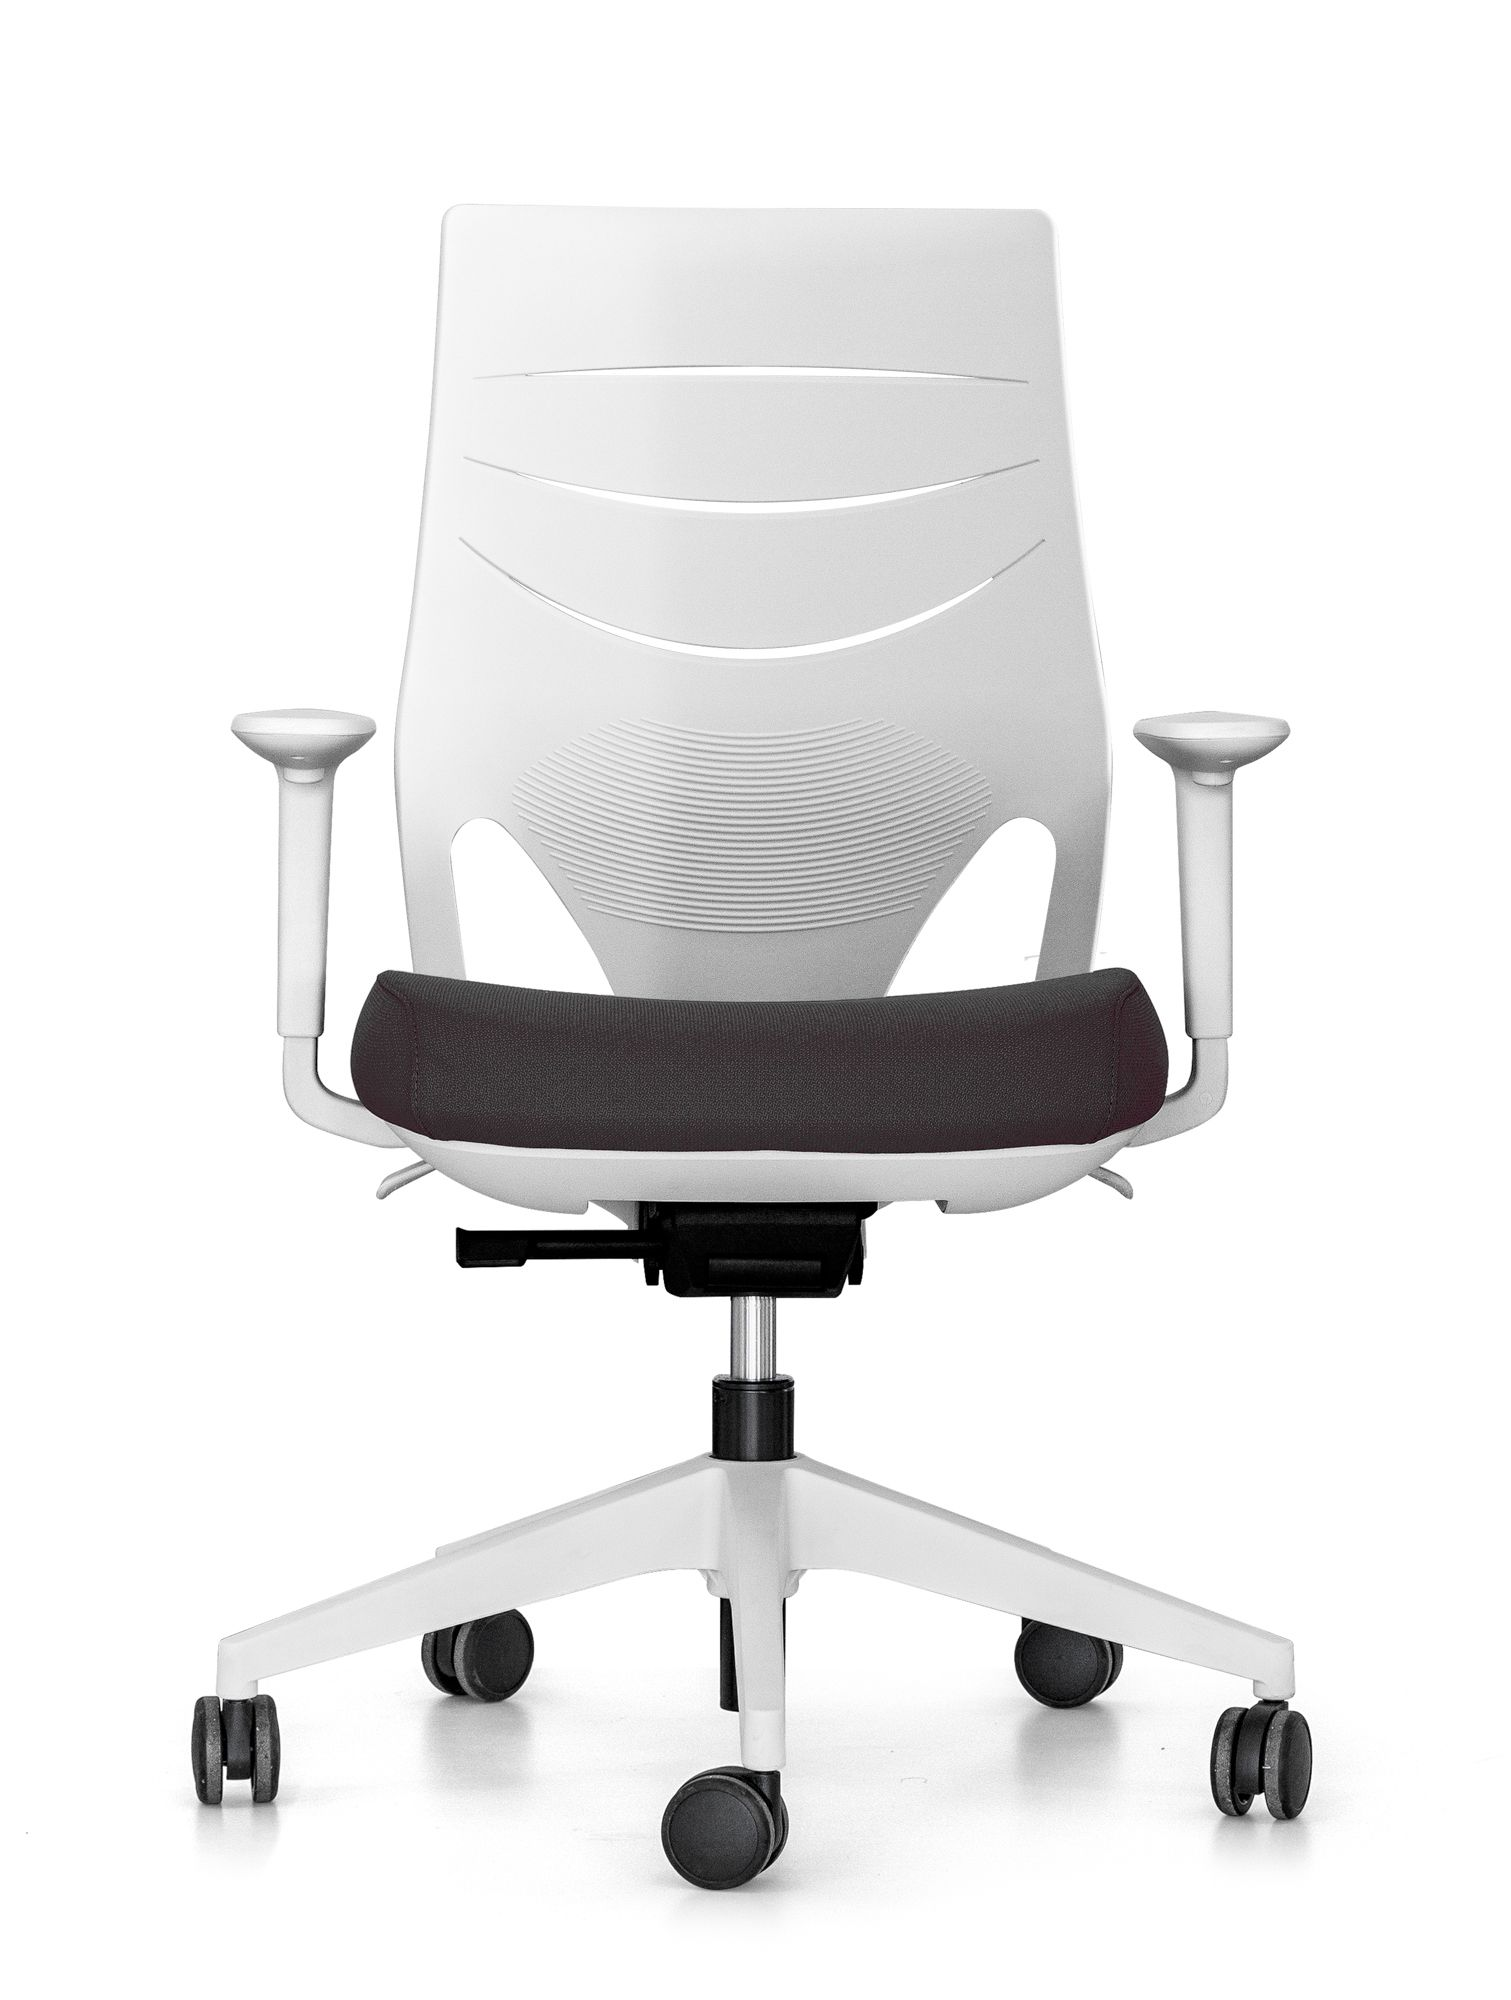 ACTIU  EFIT chair by Alegre Design wwwactiucom  Office